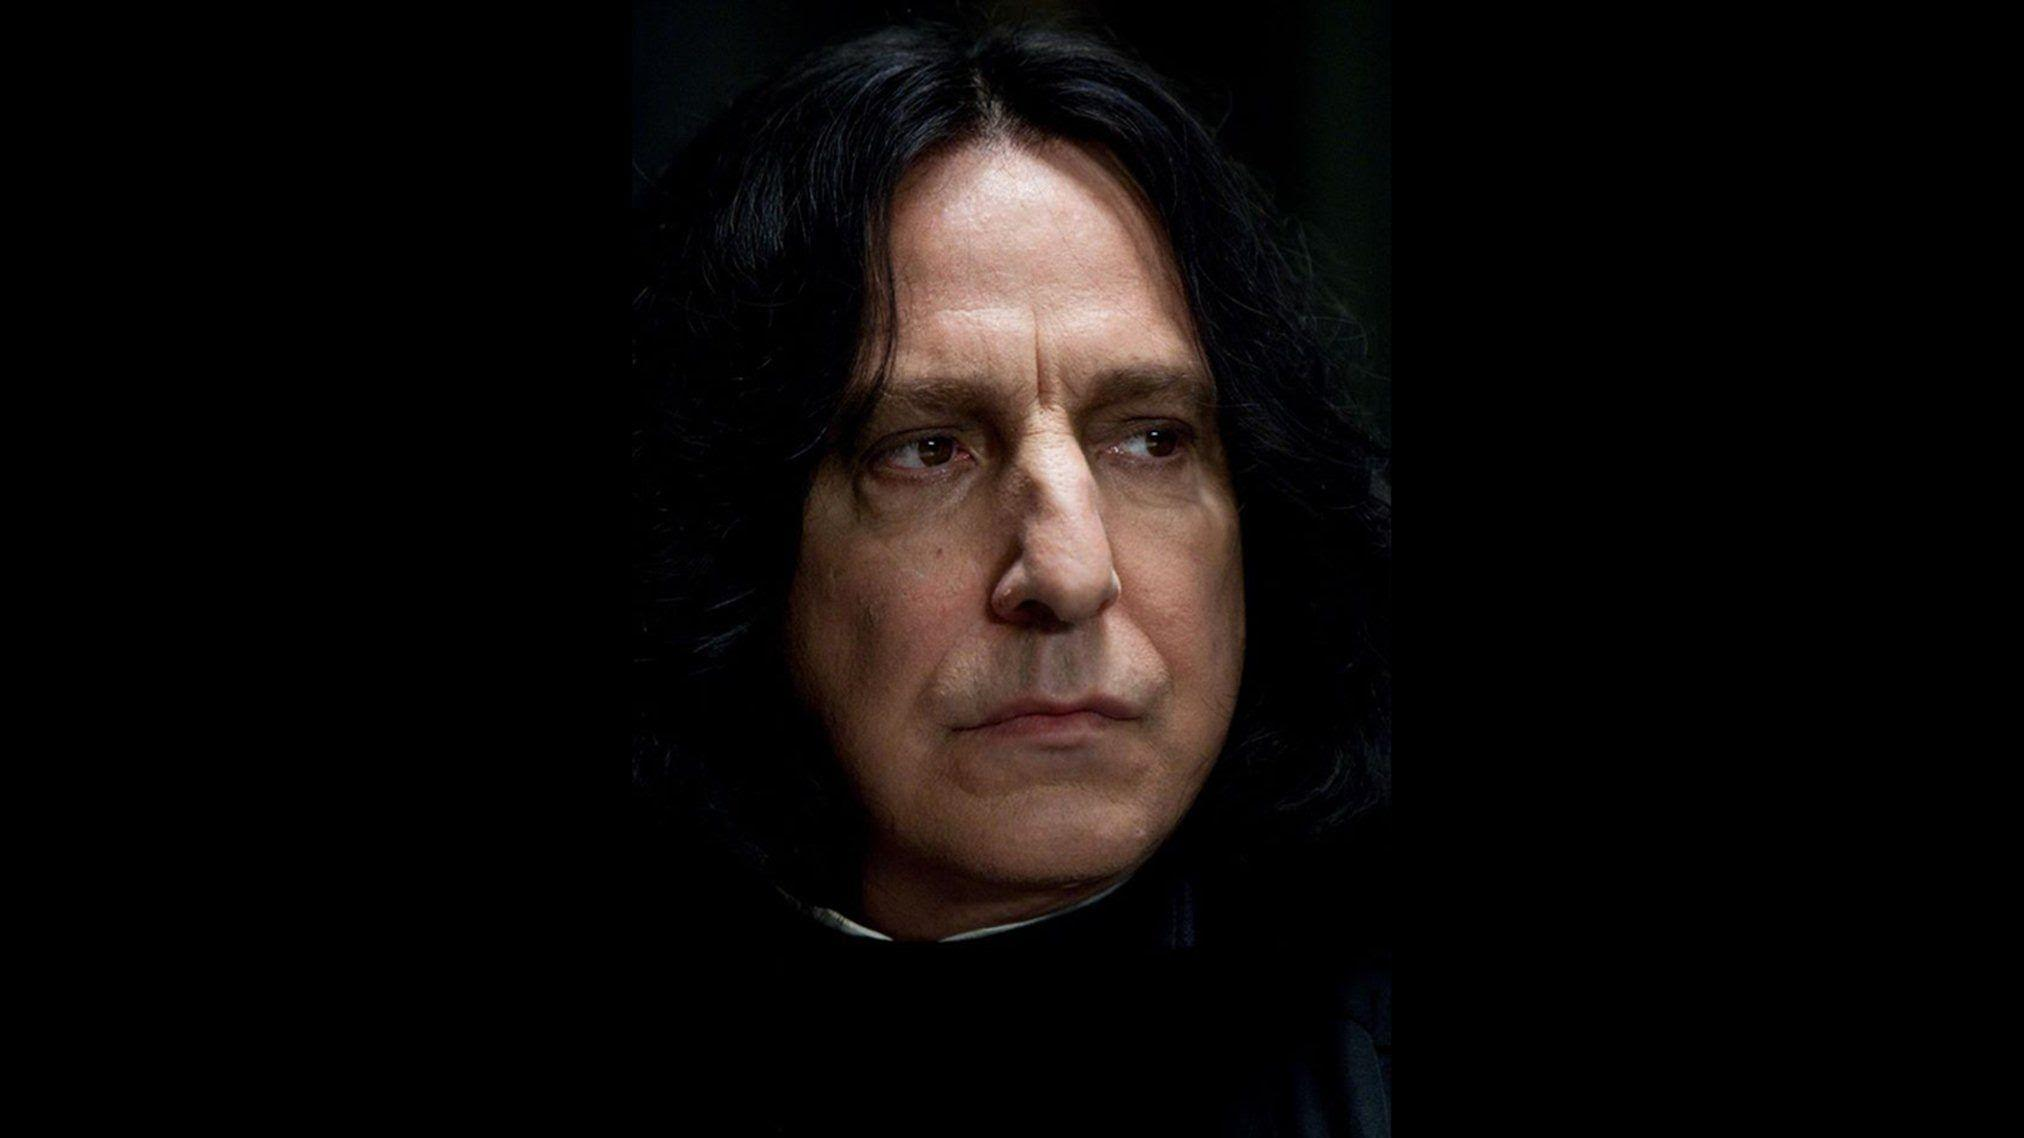 Professor Severus Snape Wallpapers - Wallpaper Cave